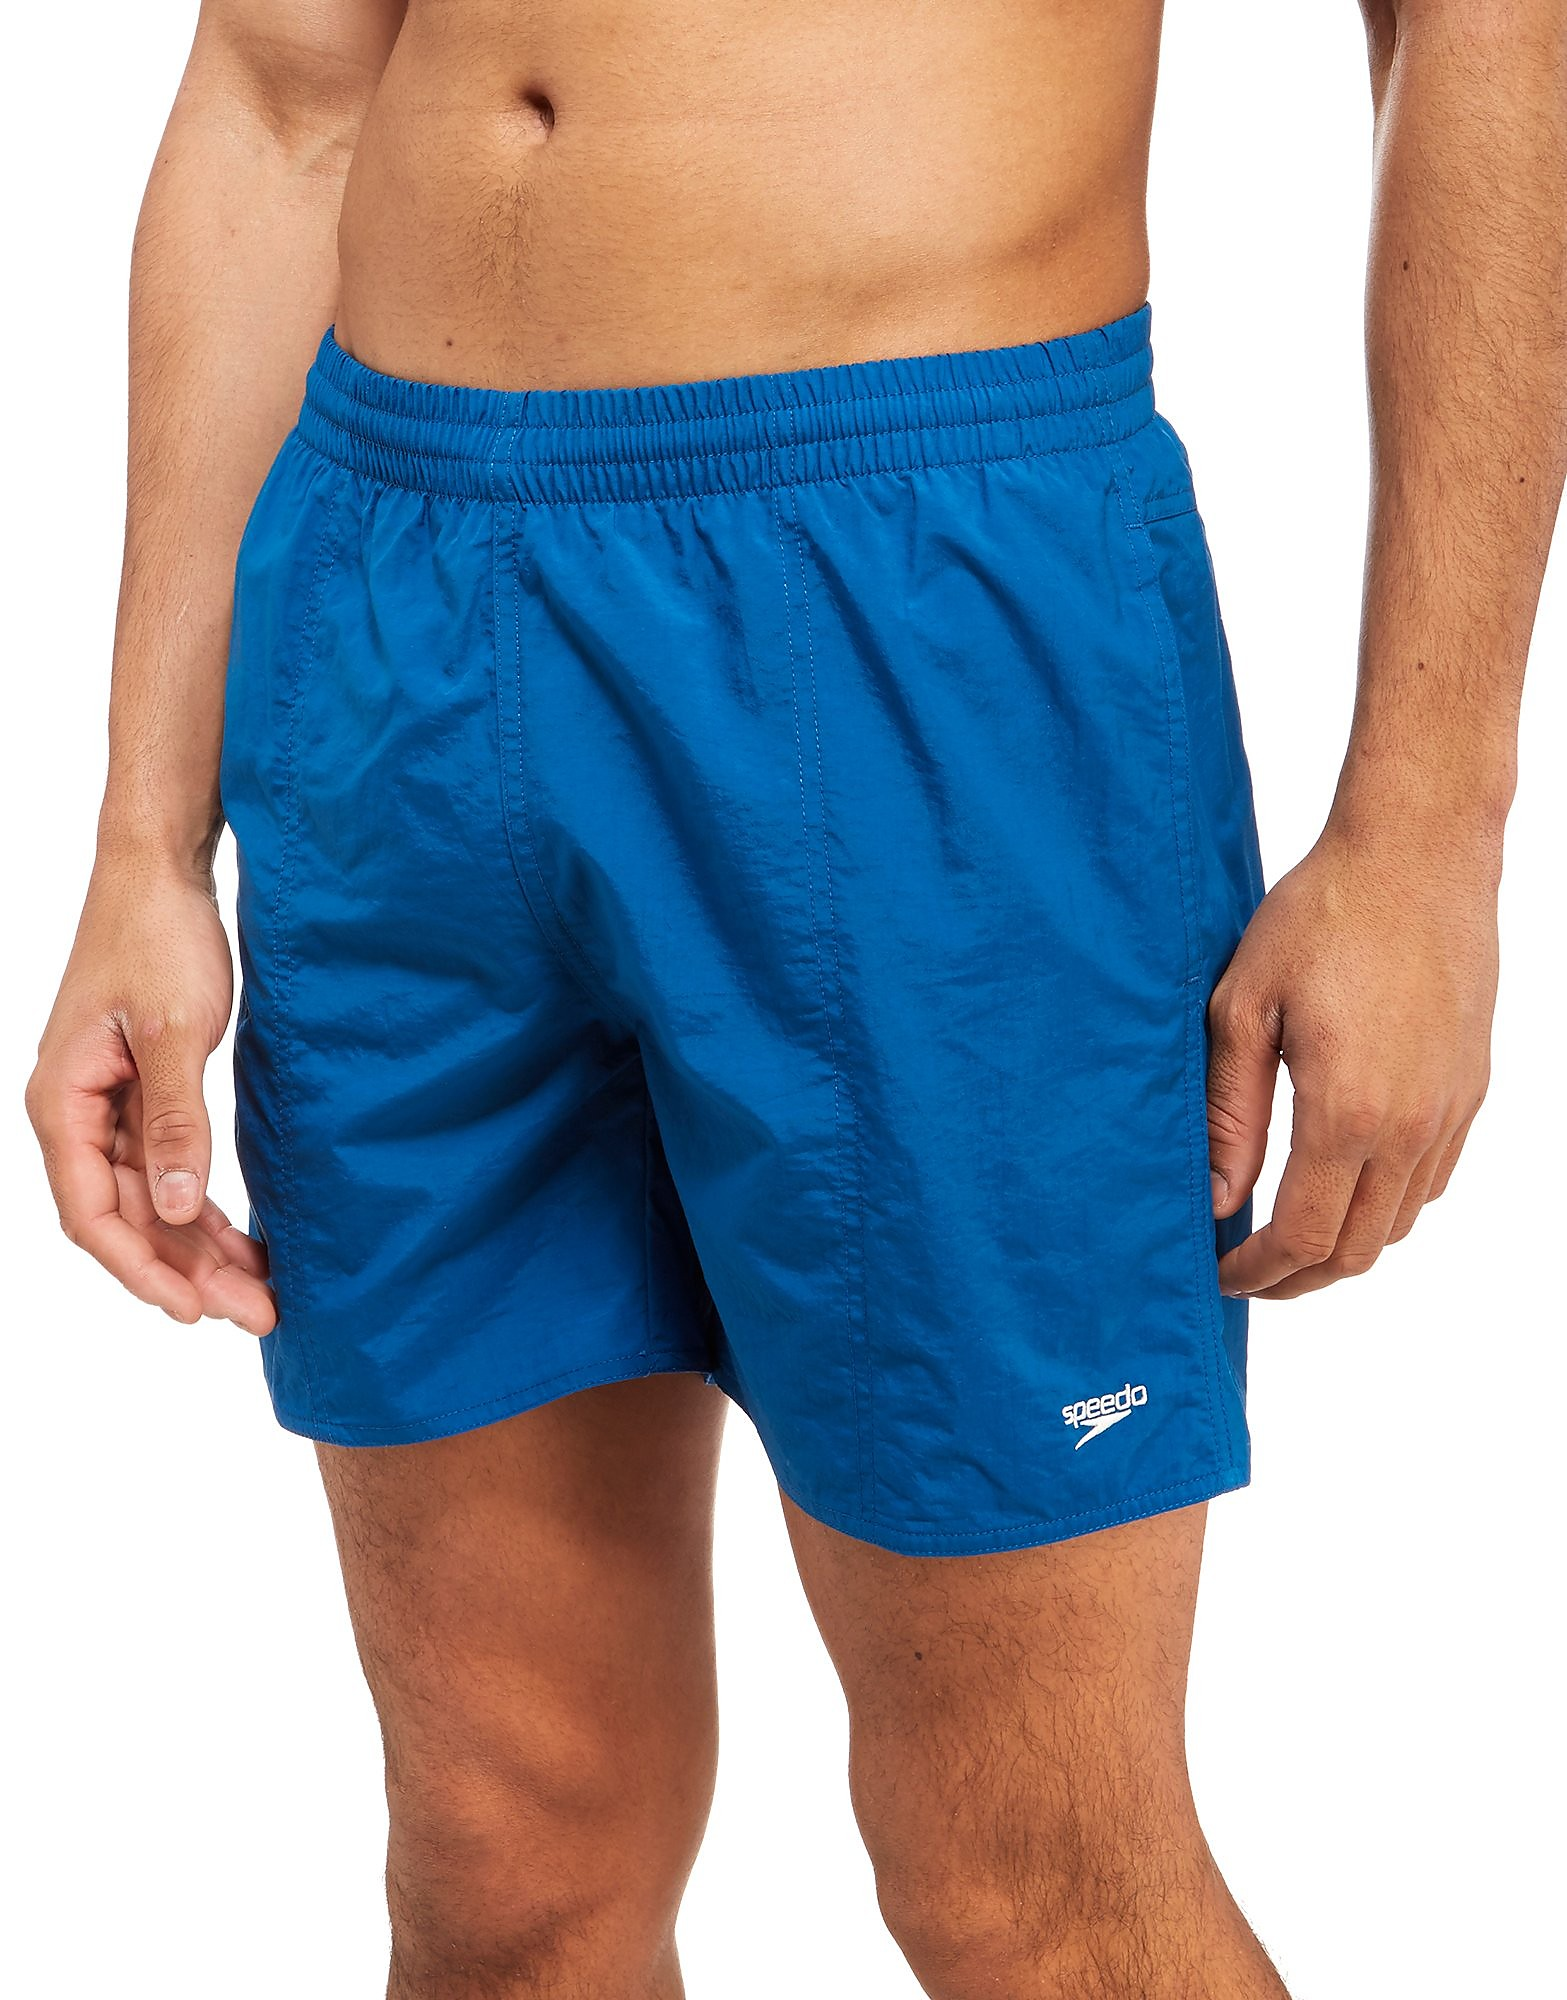 Speedo Solid Leisure Swim Shorts